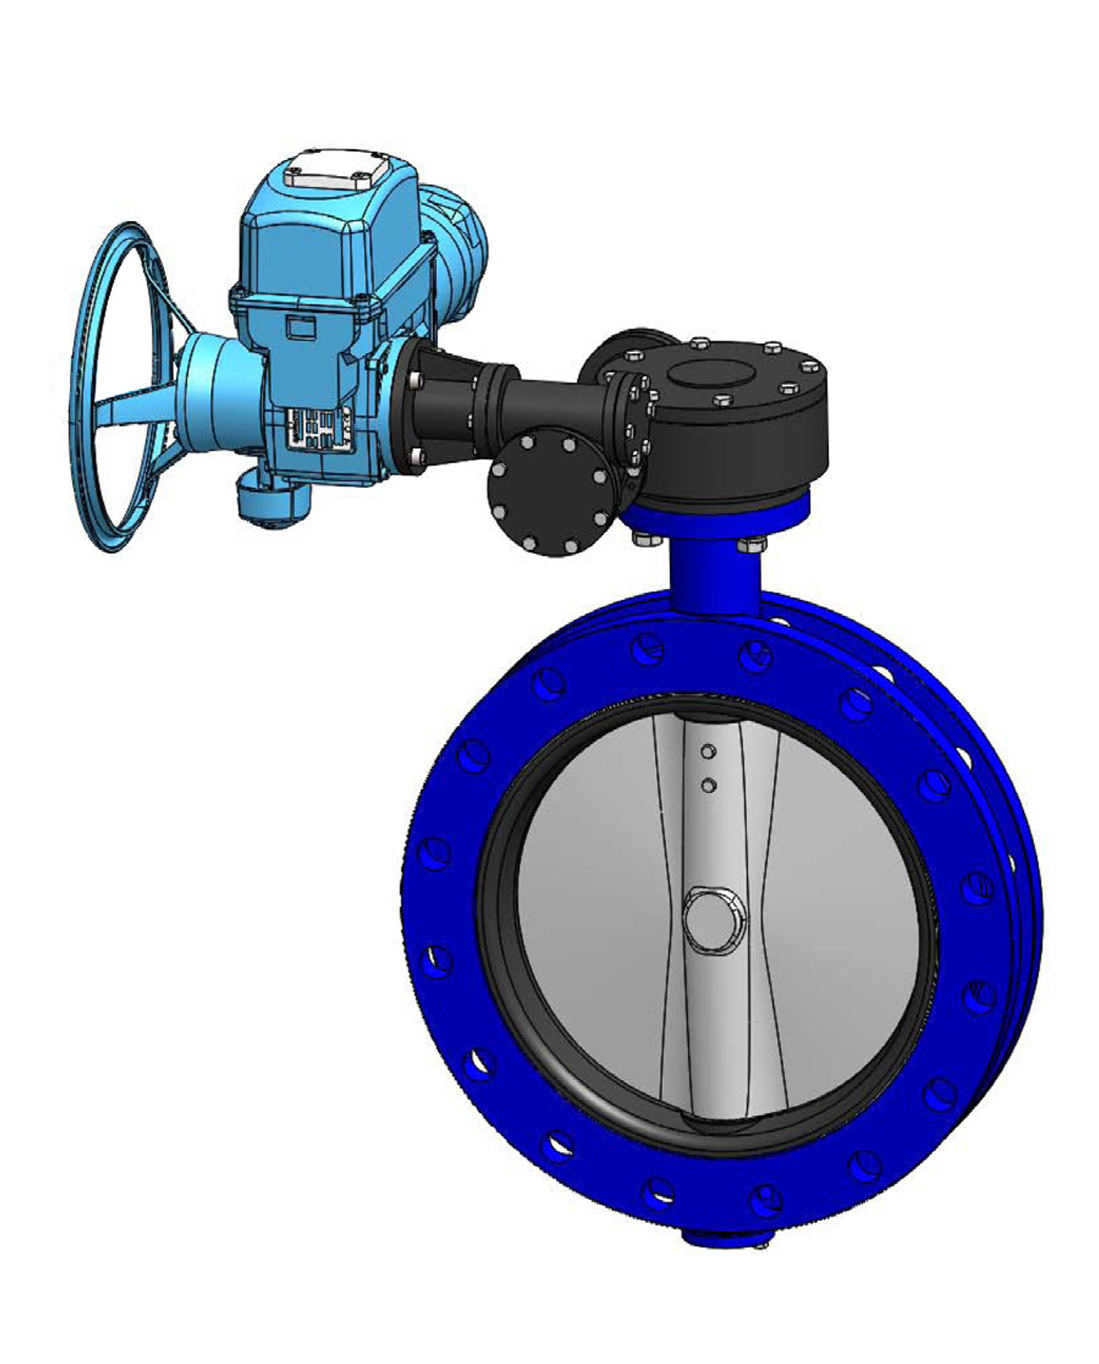 Double flanges type butterfly valve PN10 – ductile iron body – stainless steel disc – BERNARD electric operator